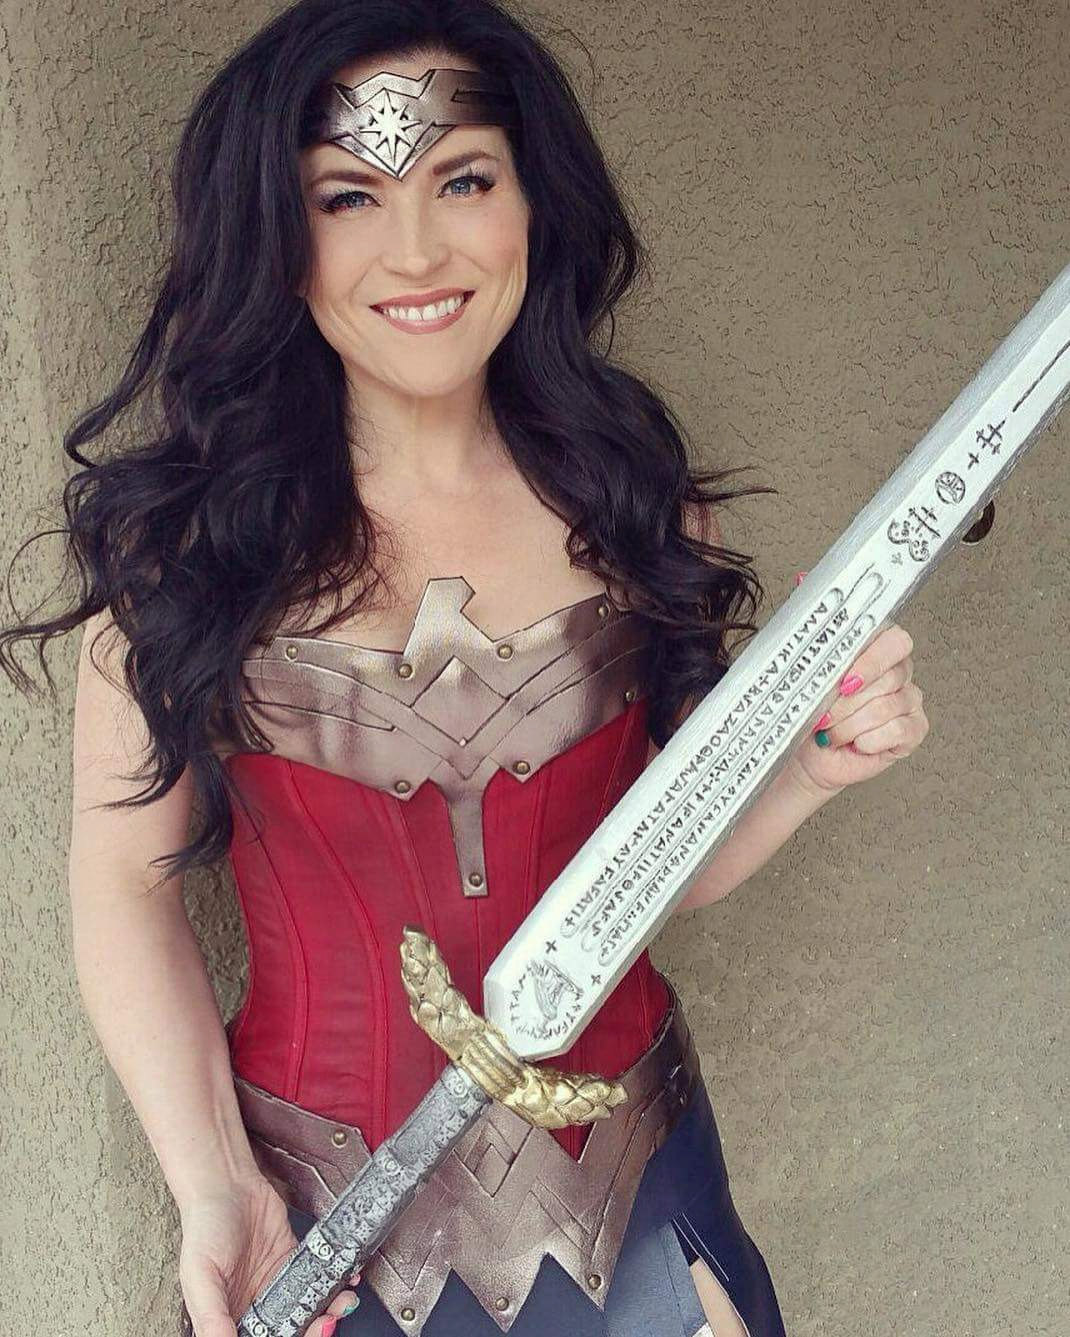 Spada Wonder Woman Wonder Woman Sword Dawn Of Justice Inspired Wood Sword